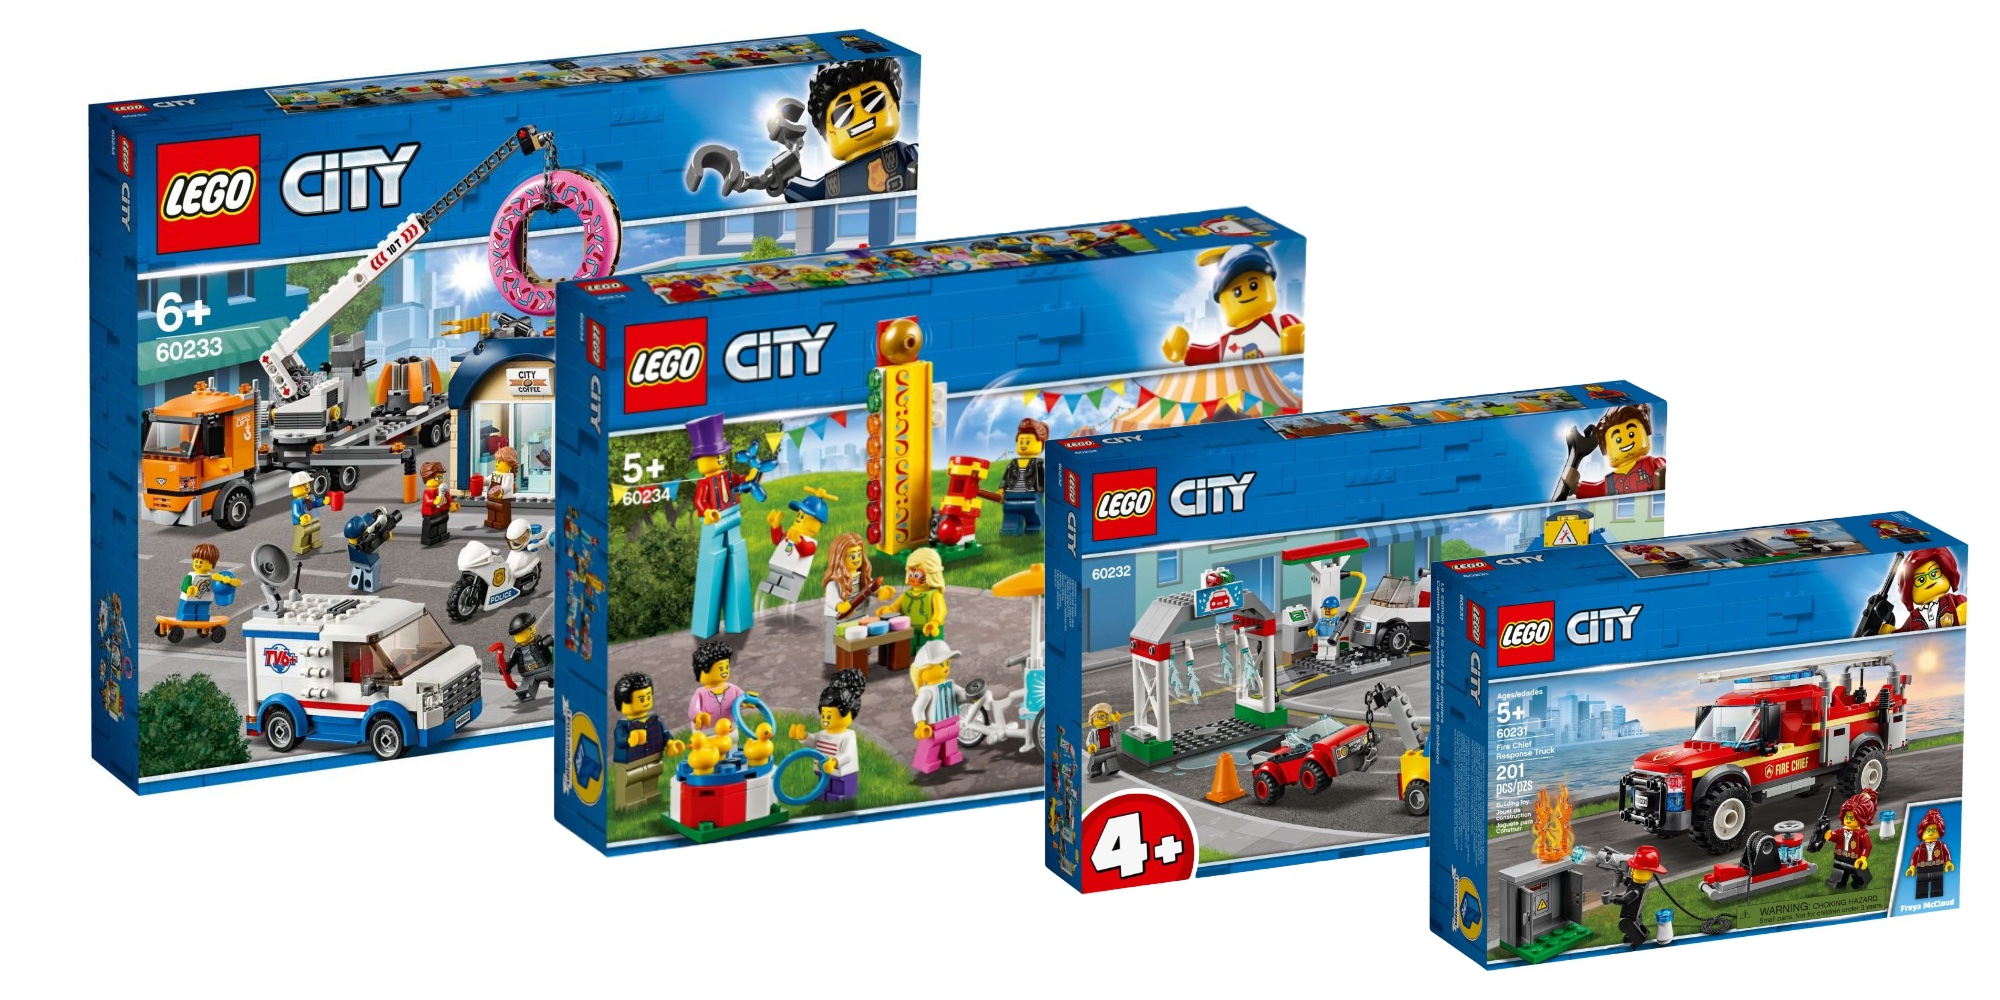 LEGO debuts four upcoming City + three Harry Potter kits and new Braille bricks, more [Update]